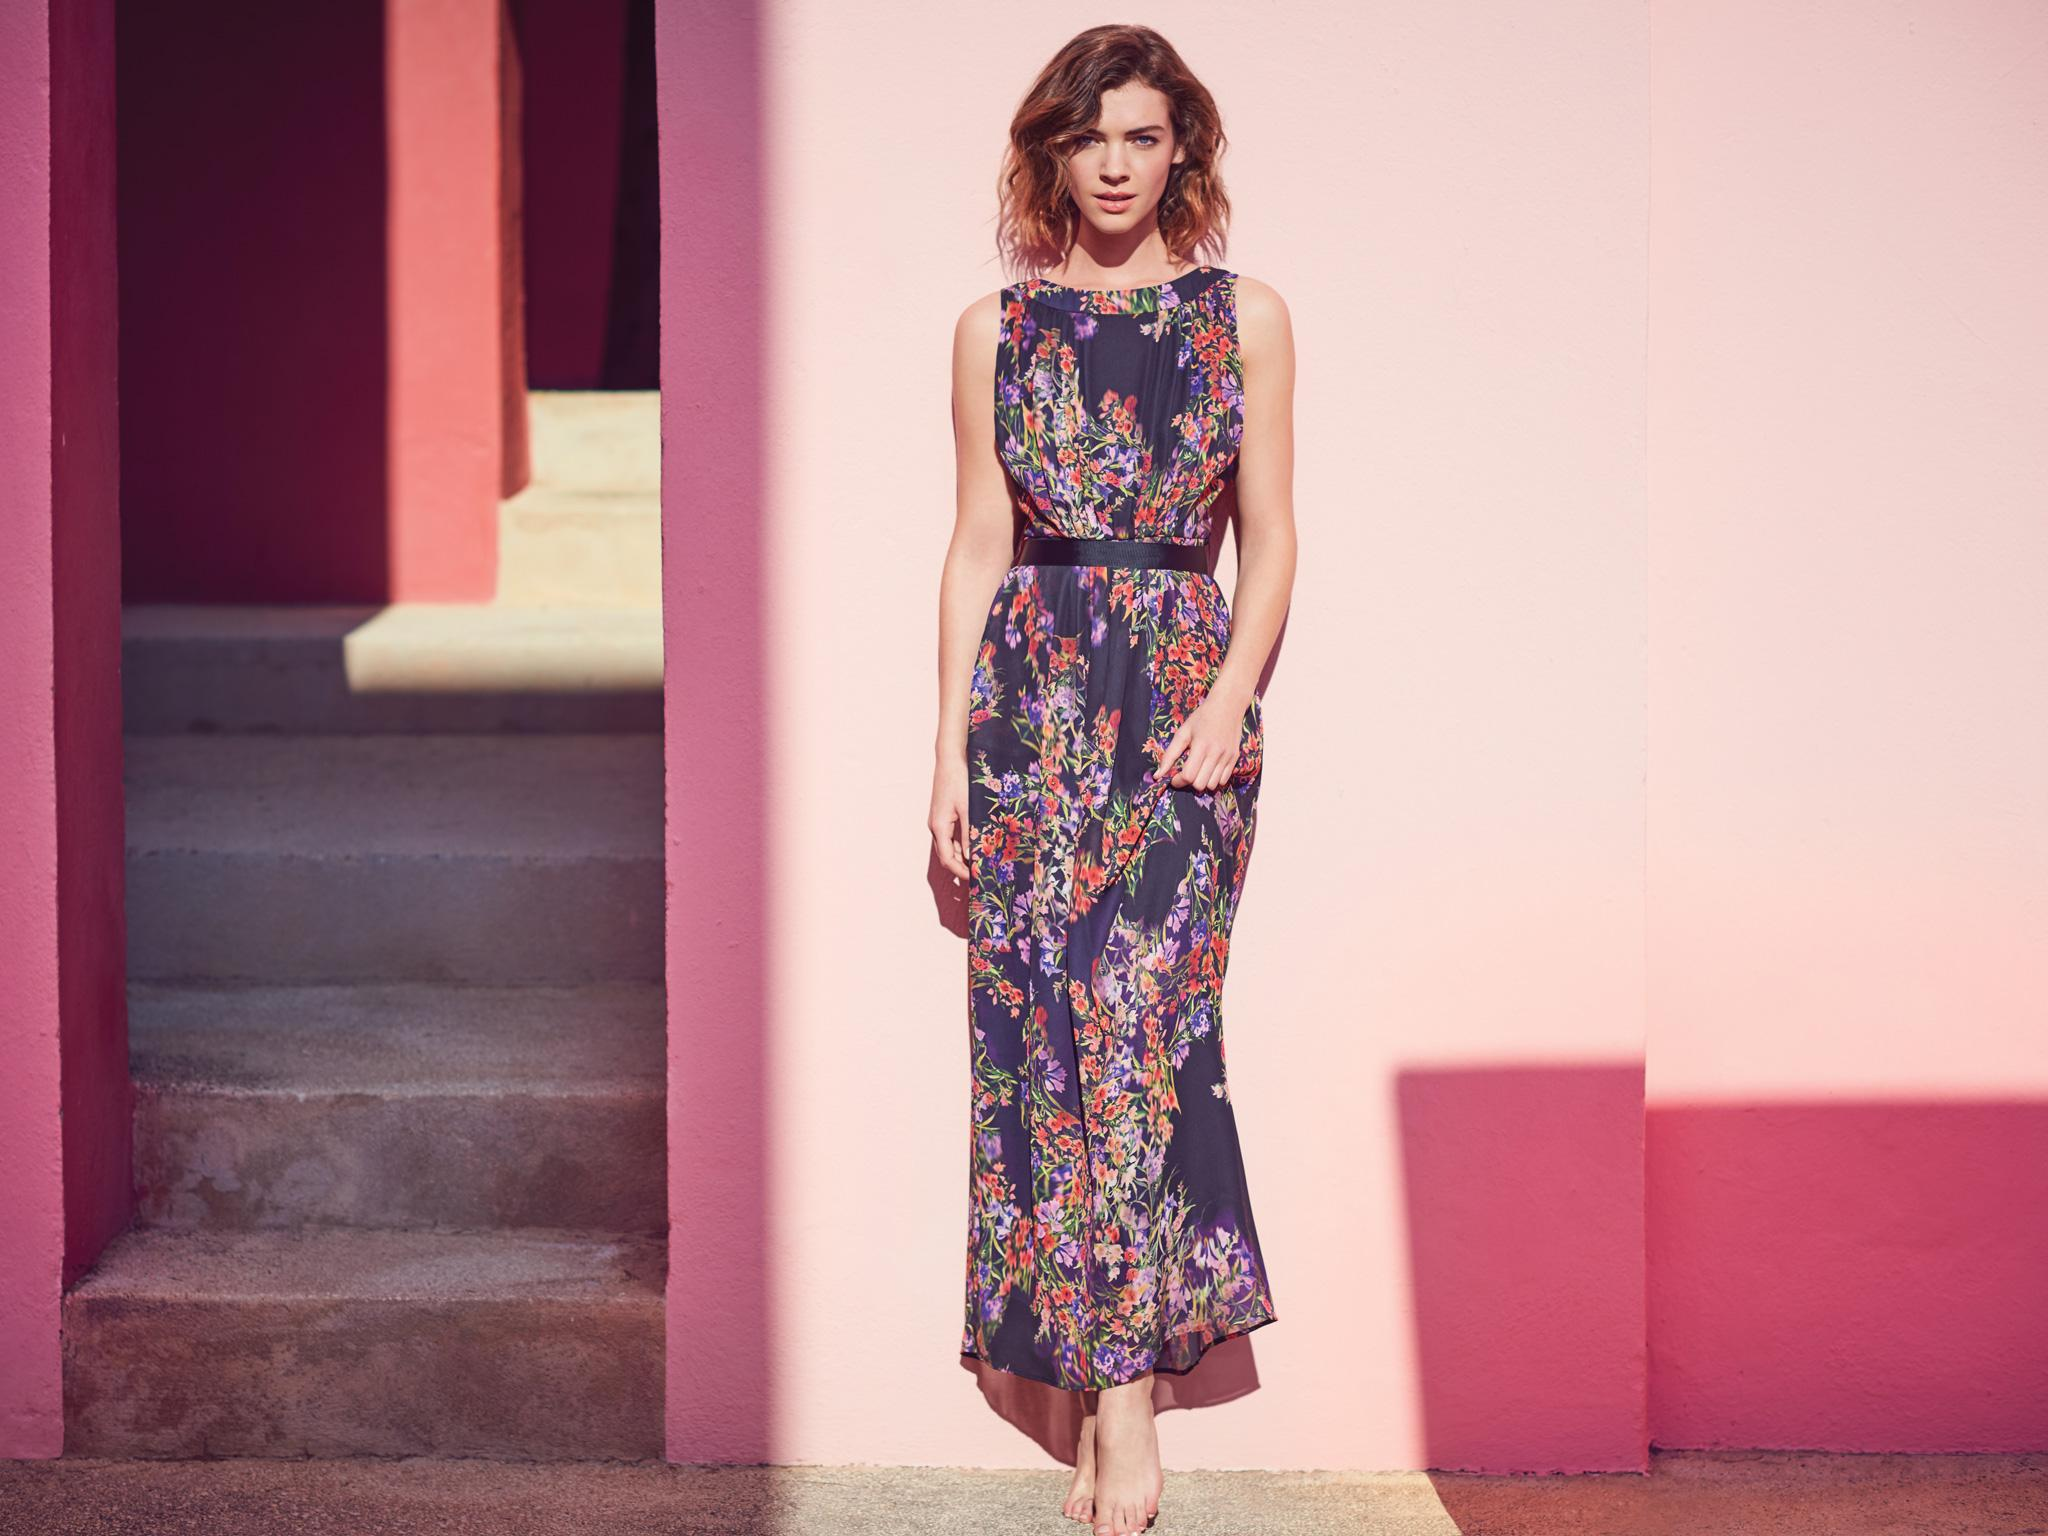 Top 10 clothing brands for women